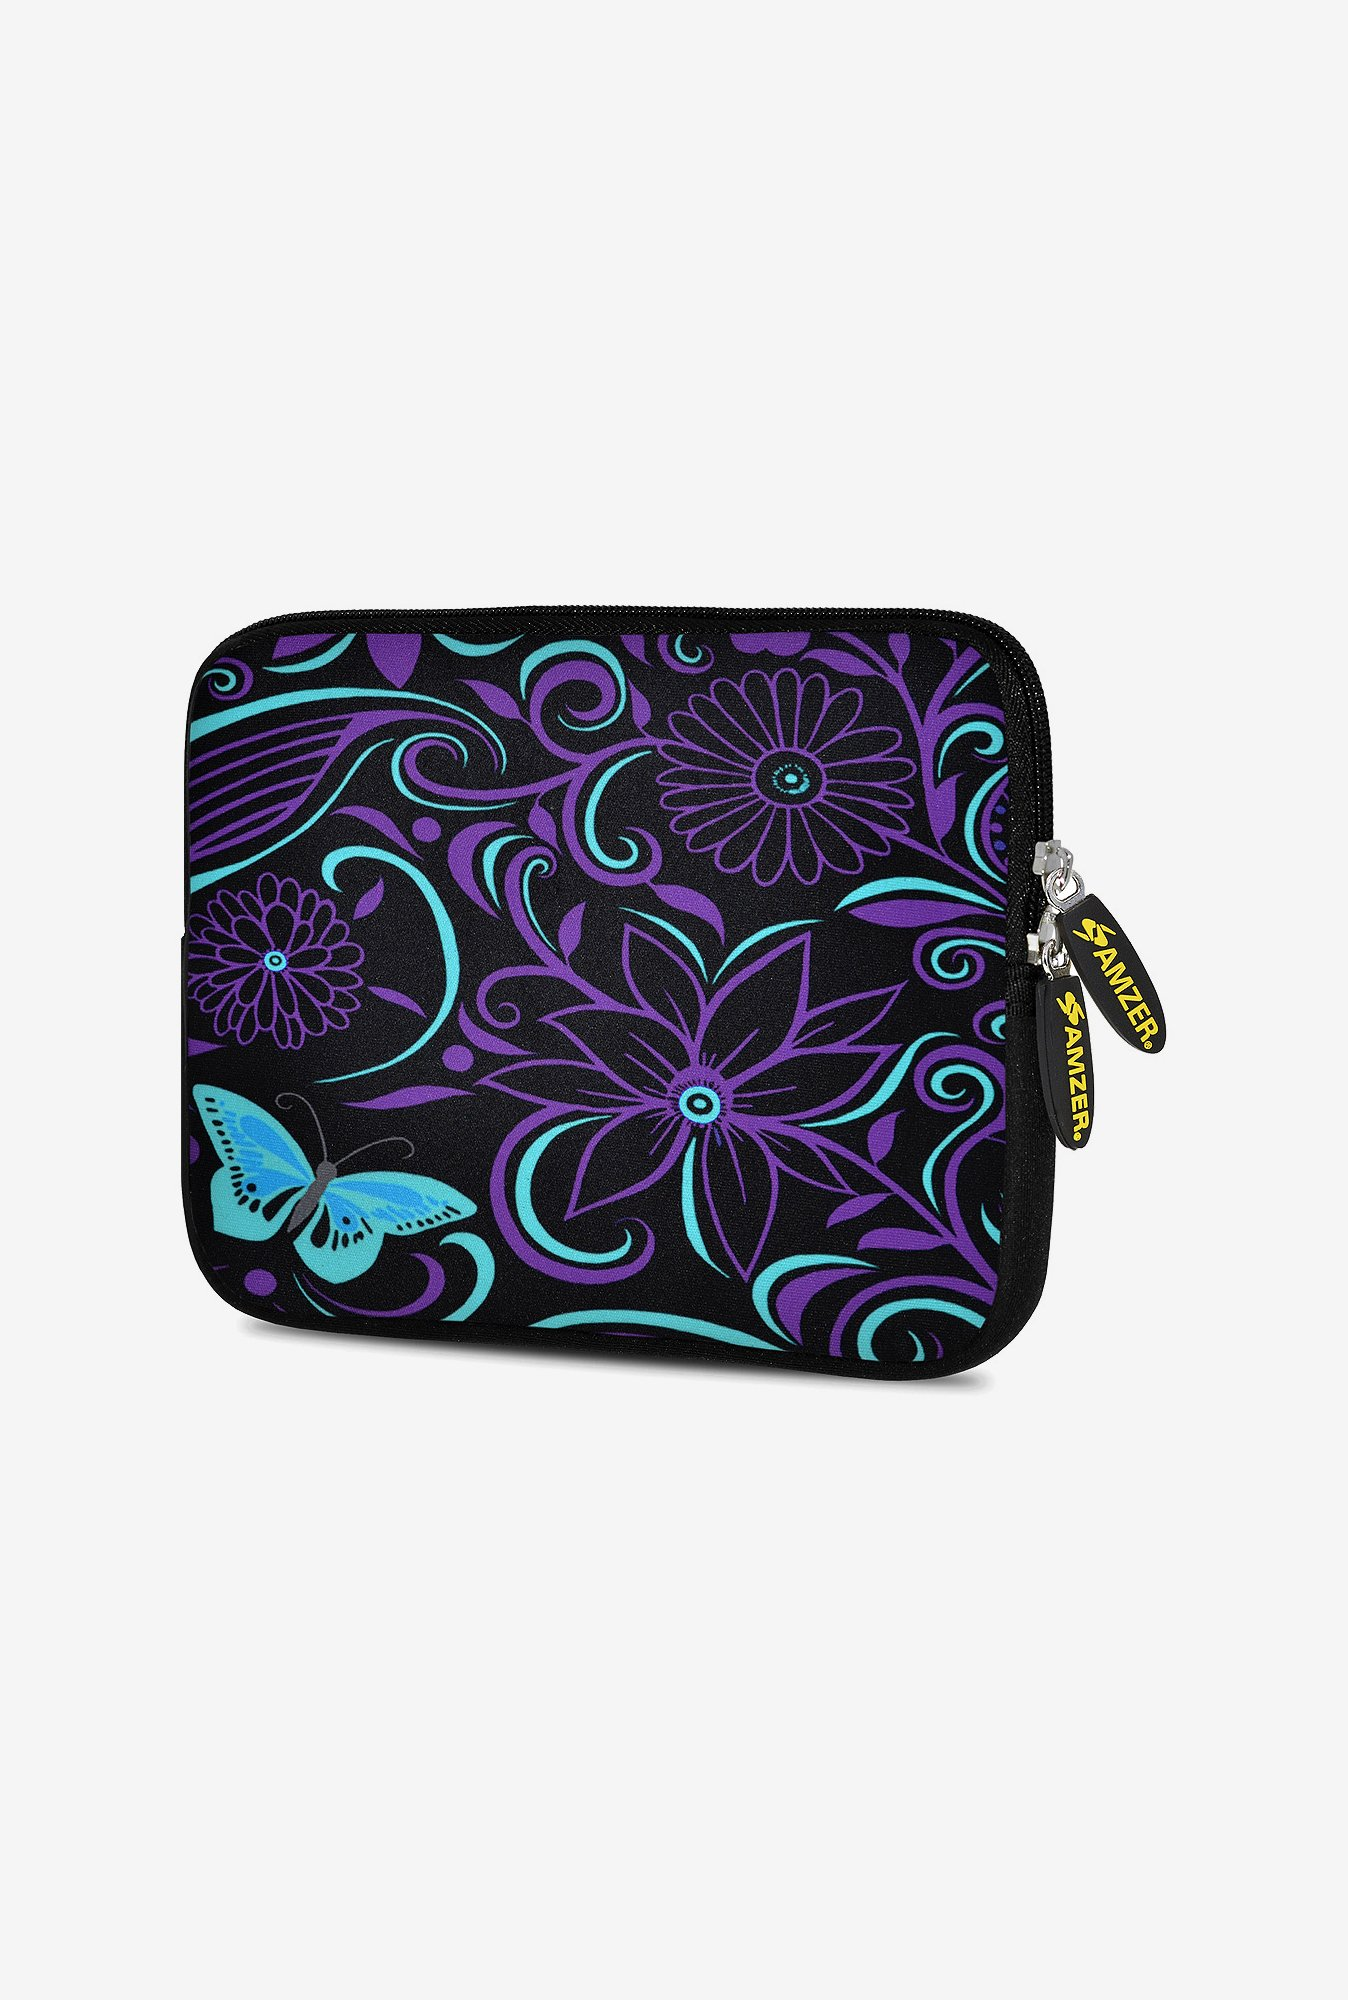 Amzer 10.5 inch Neoprene Sleeve - Turquoise Purple Fly